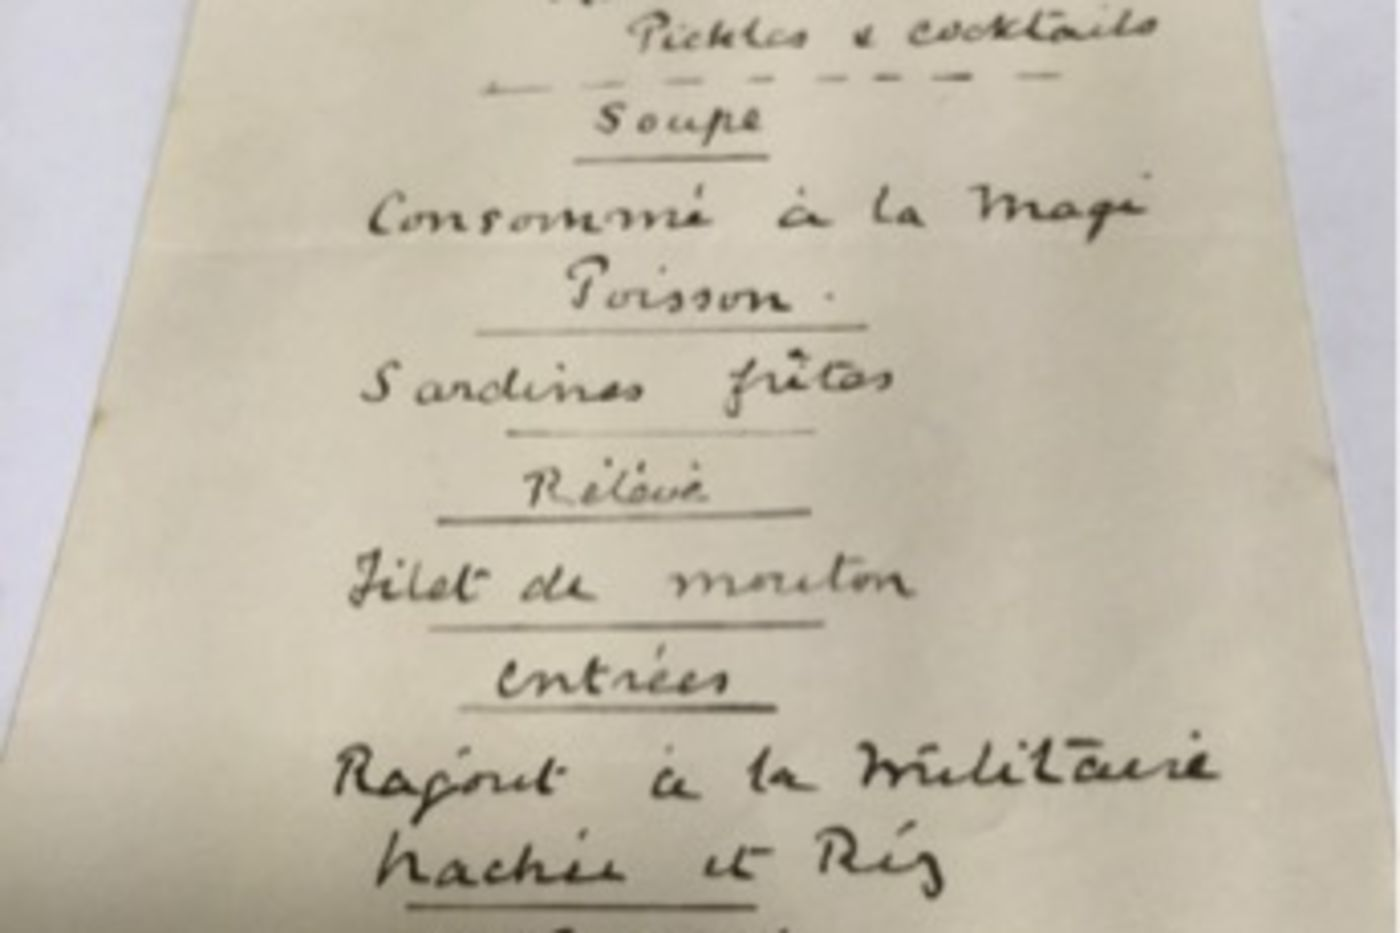 A piece of paper with a handwritten menu in French and a drawing of two flags at the top.